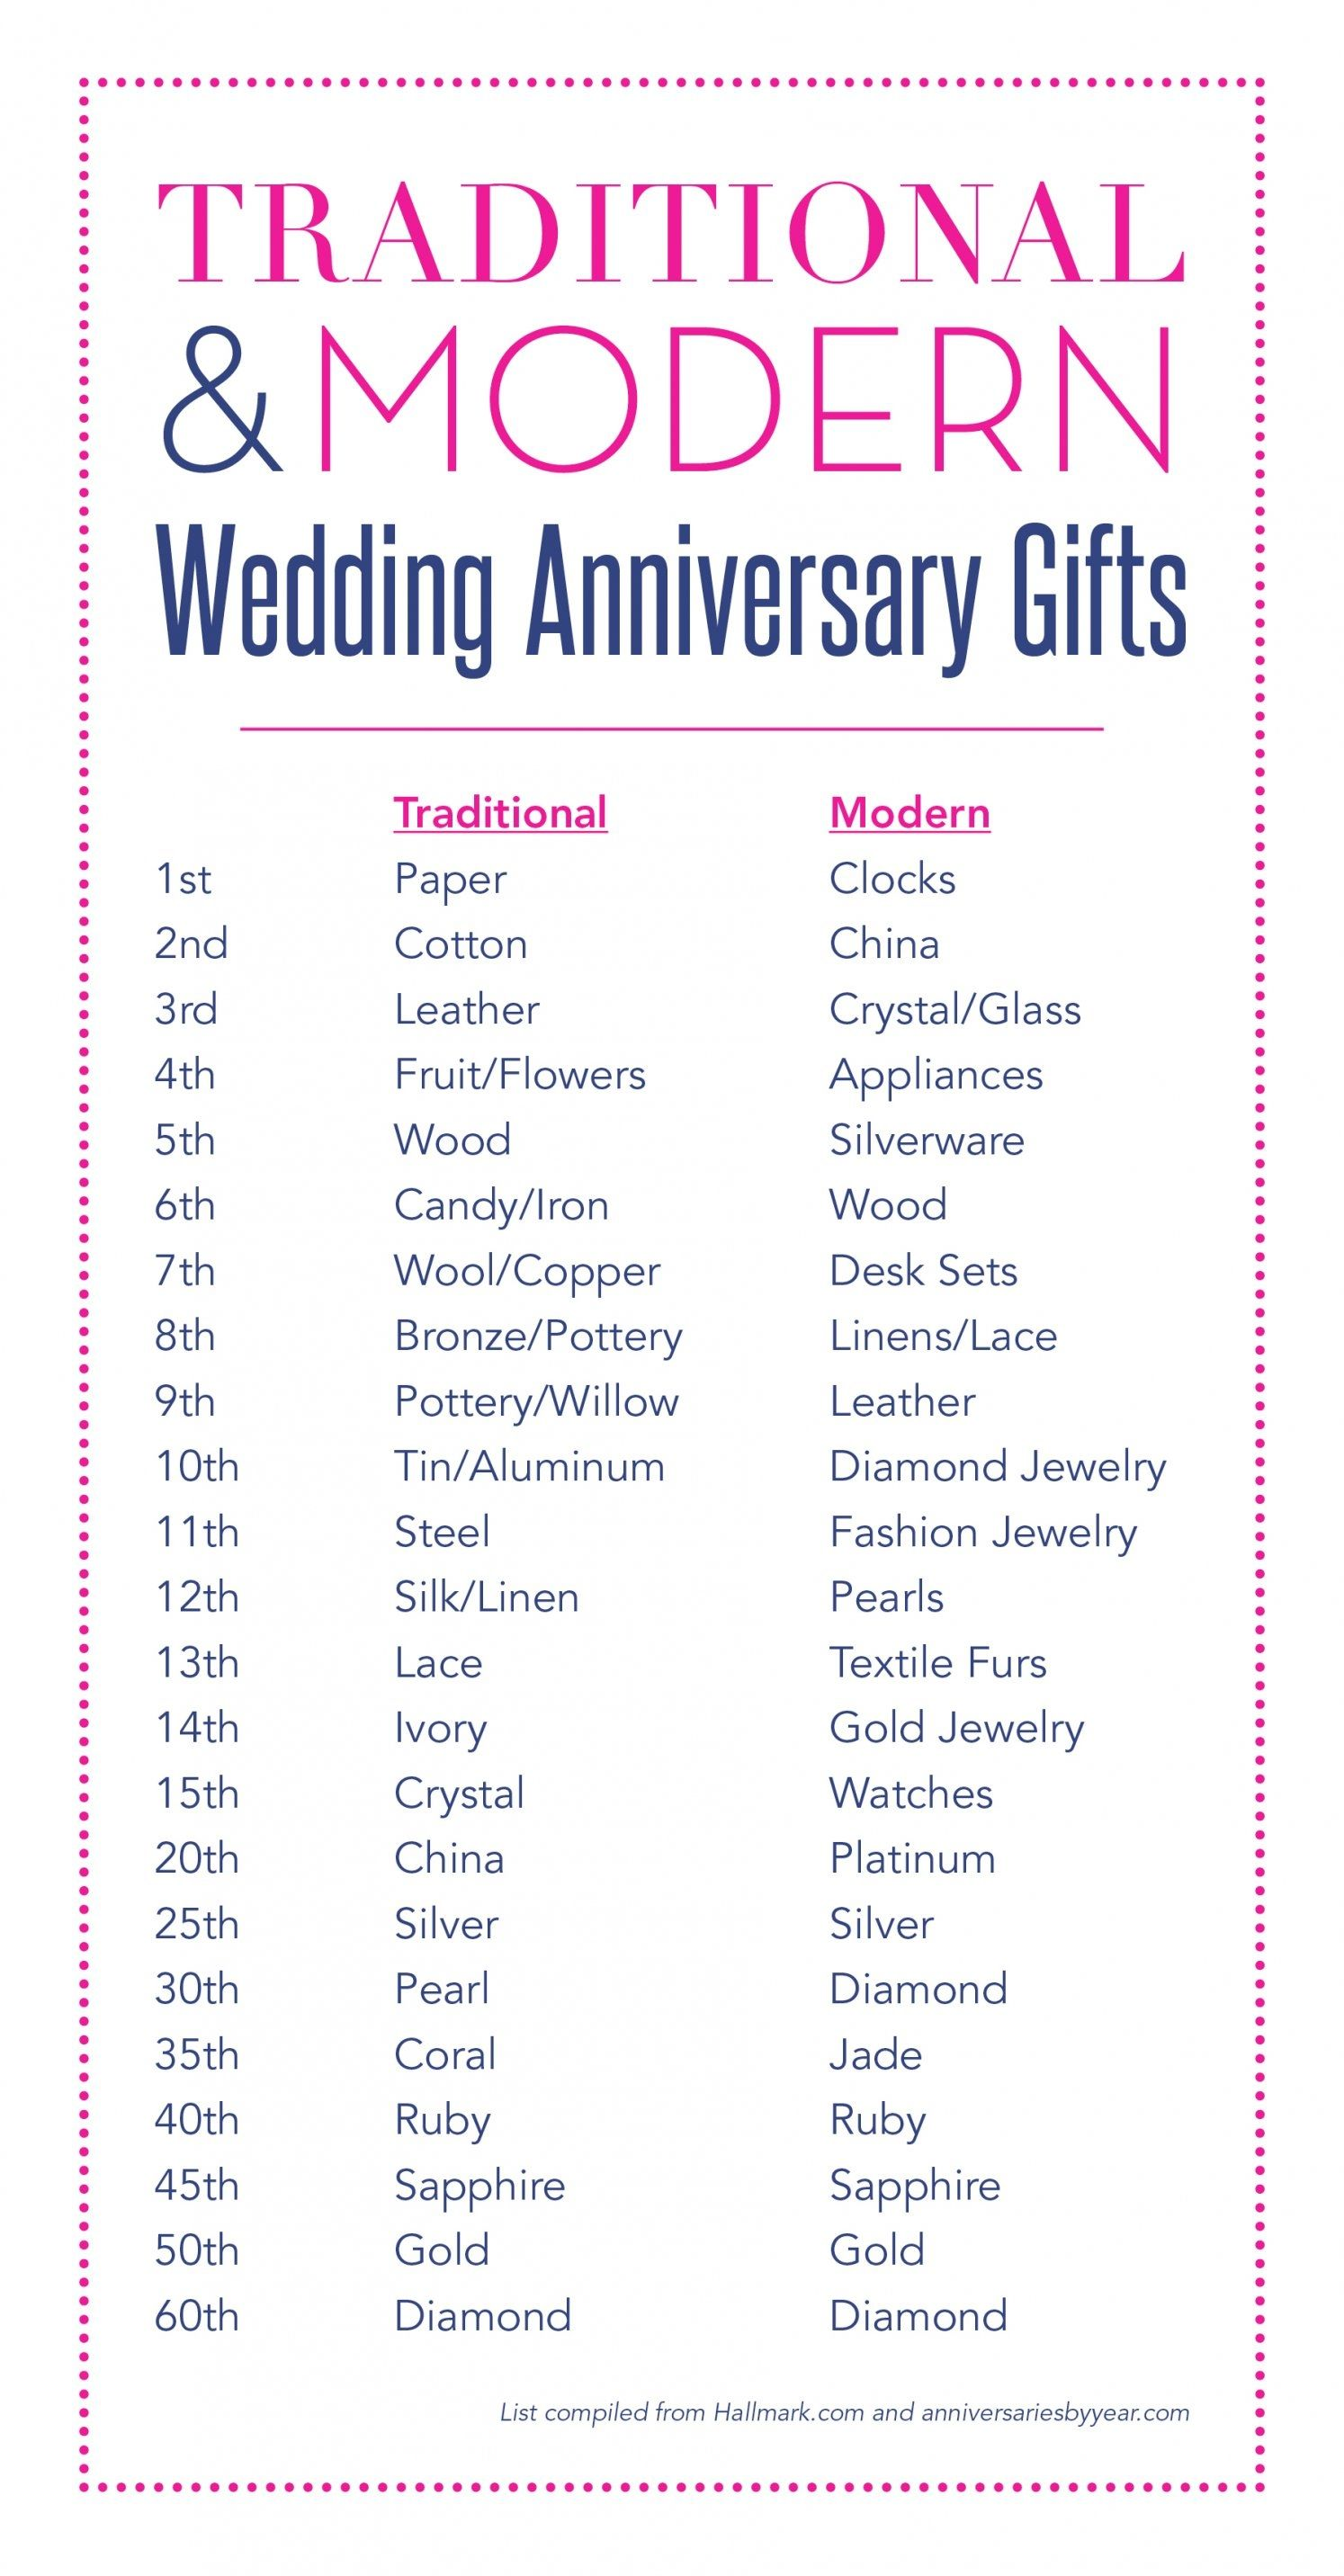 Traditional Wedding Anniversary Gifts | Wedding anniversary gifts ...